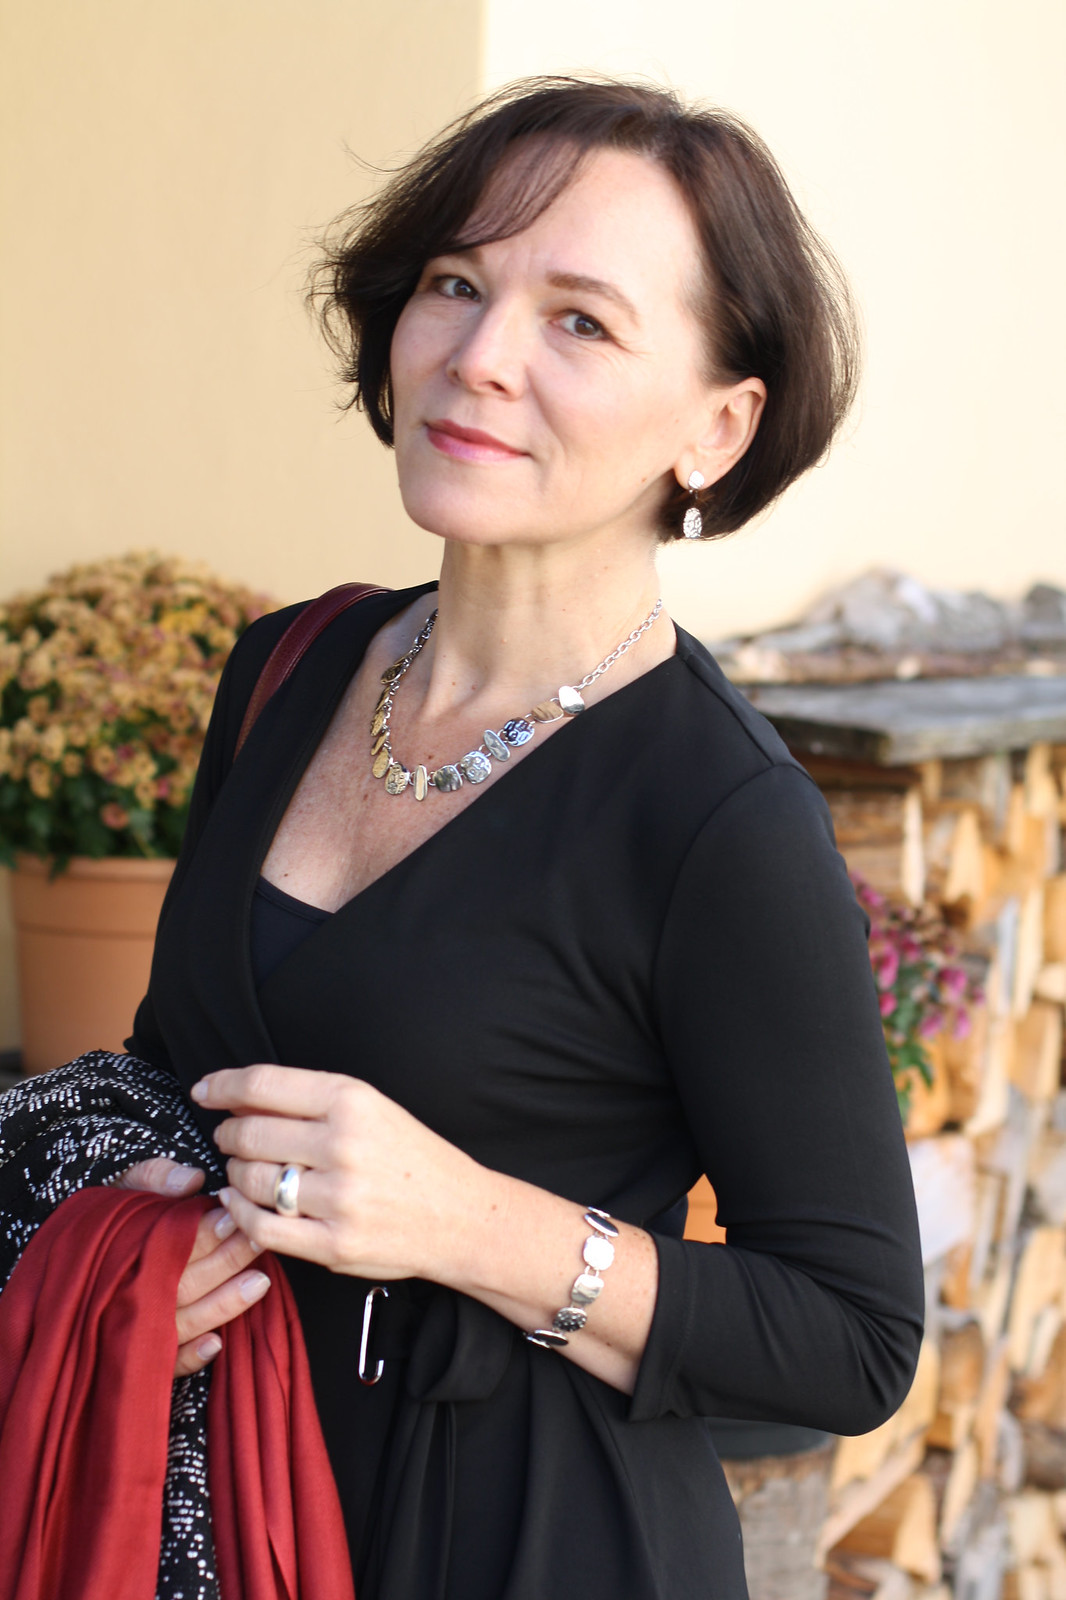 Lady of Style in Eternal Collection jewellery, over 40 style